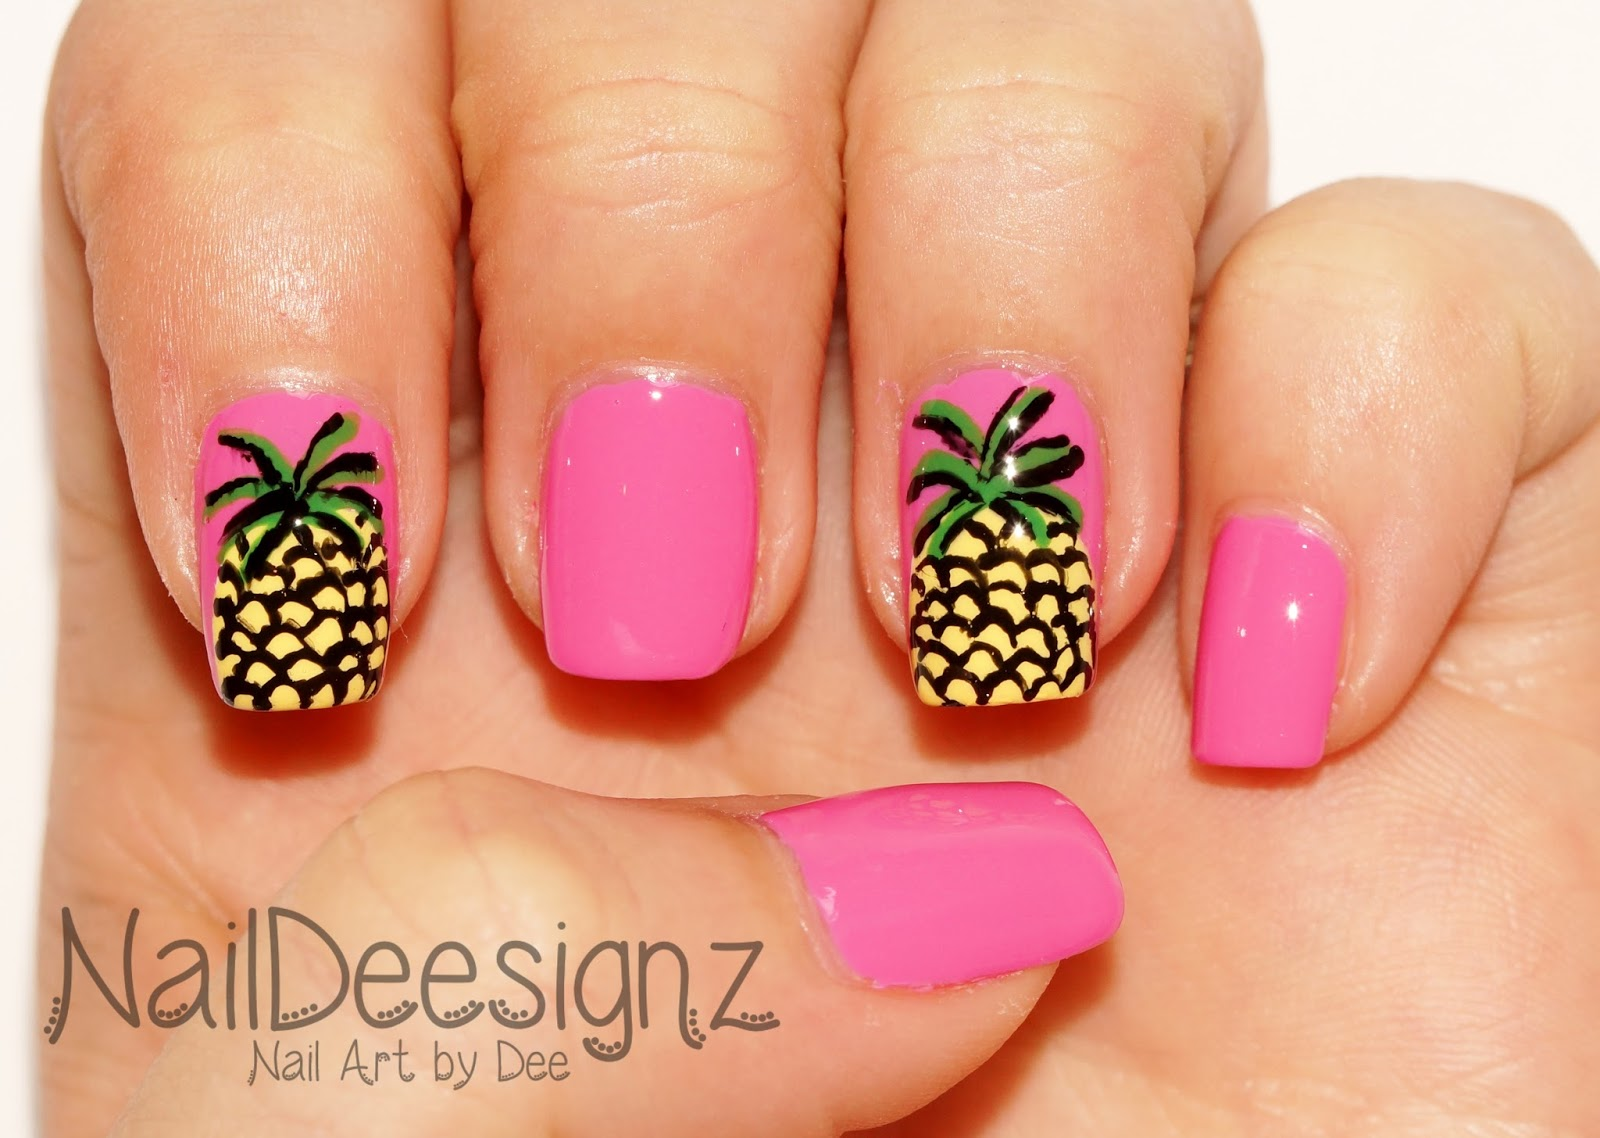 Naildeesignz pineapple nail art final design prinsesfo Image collections